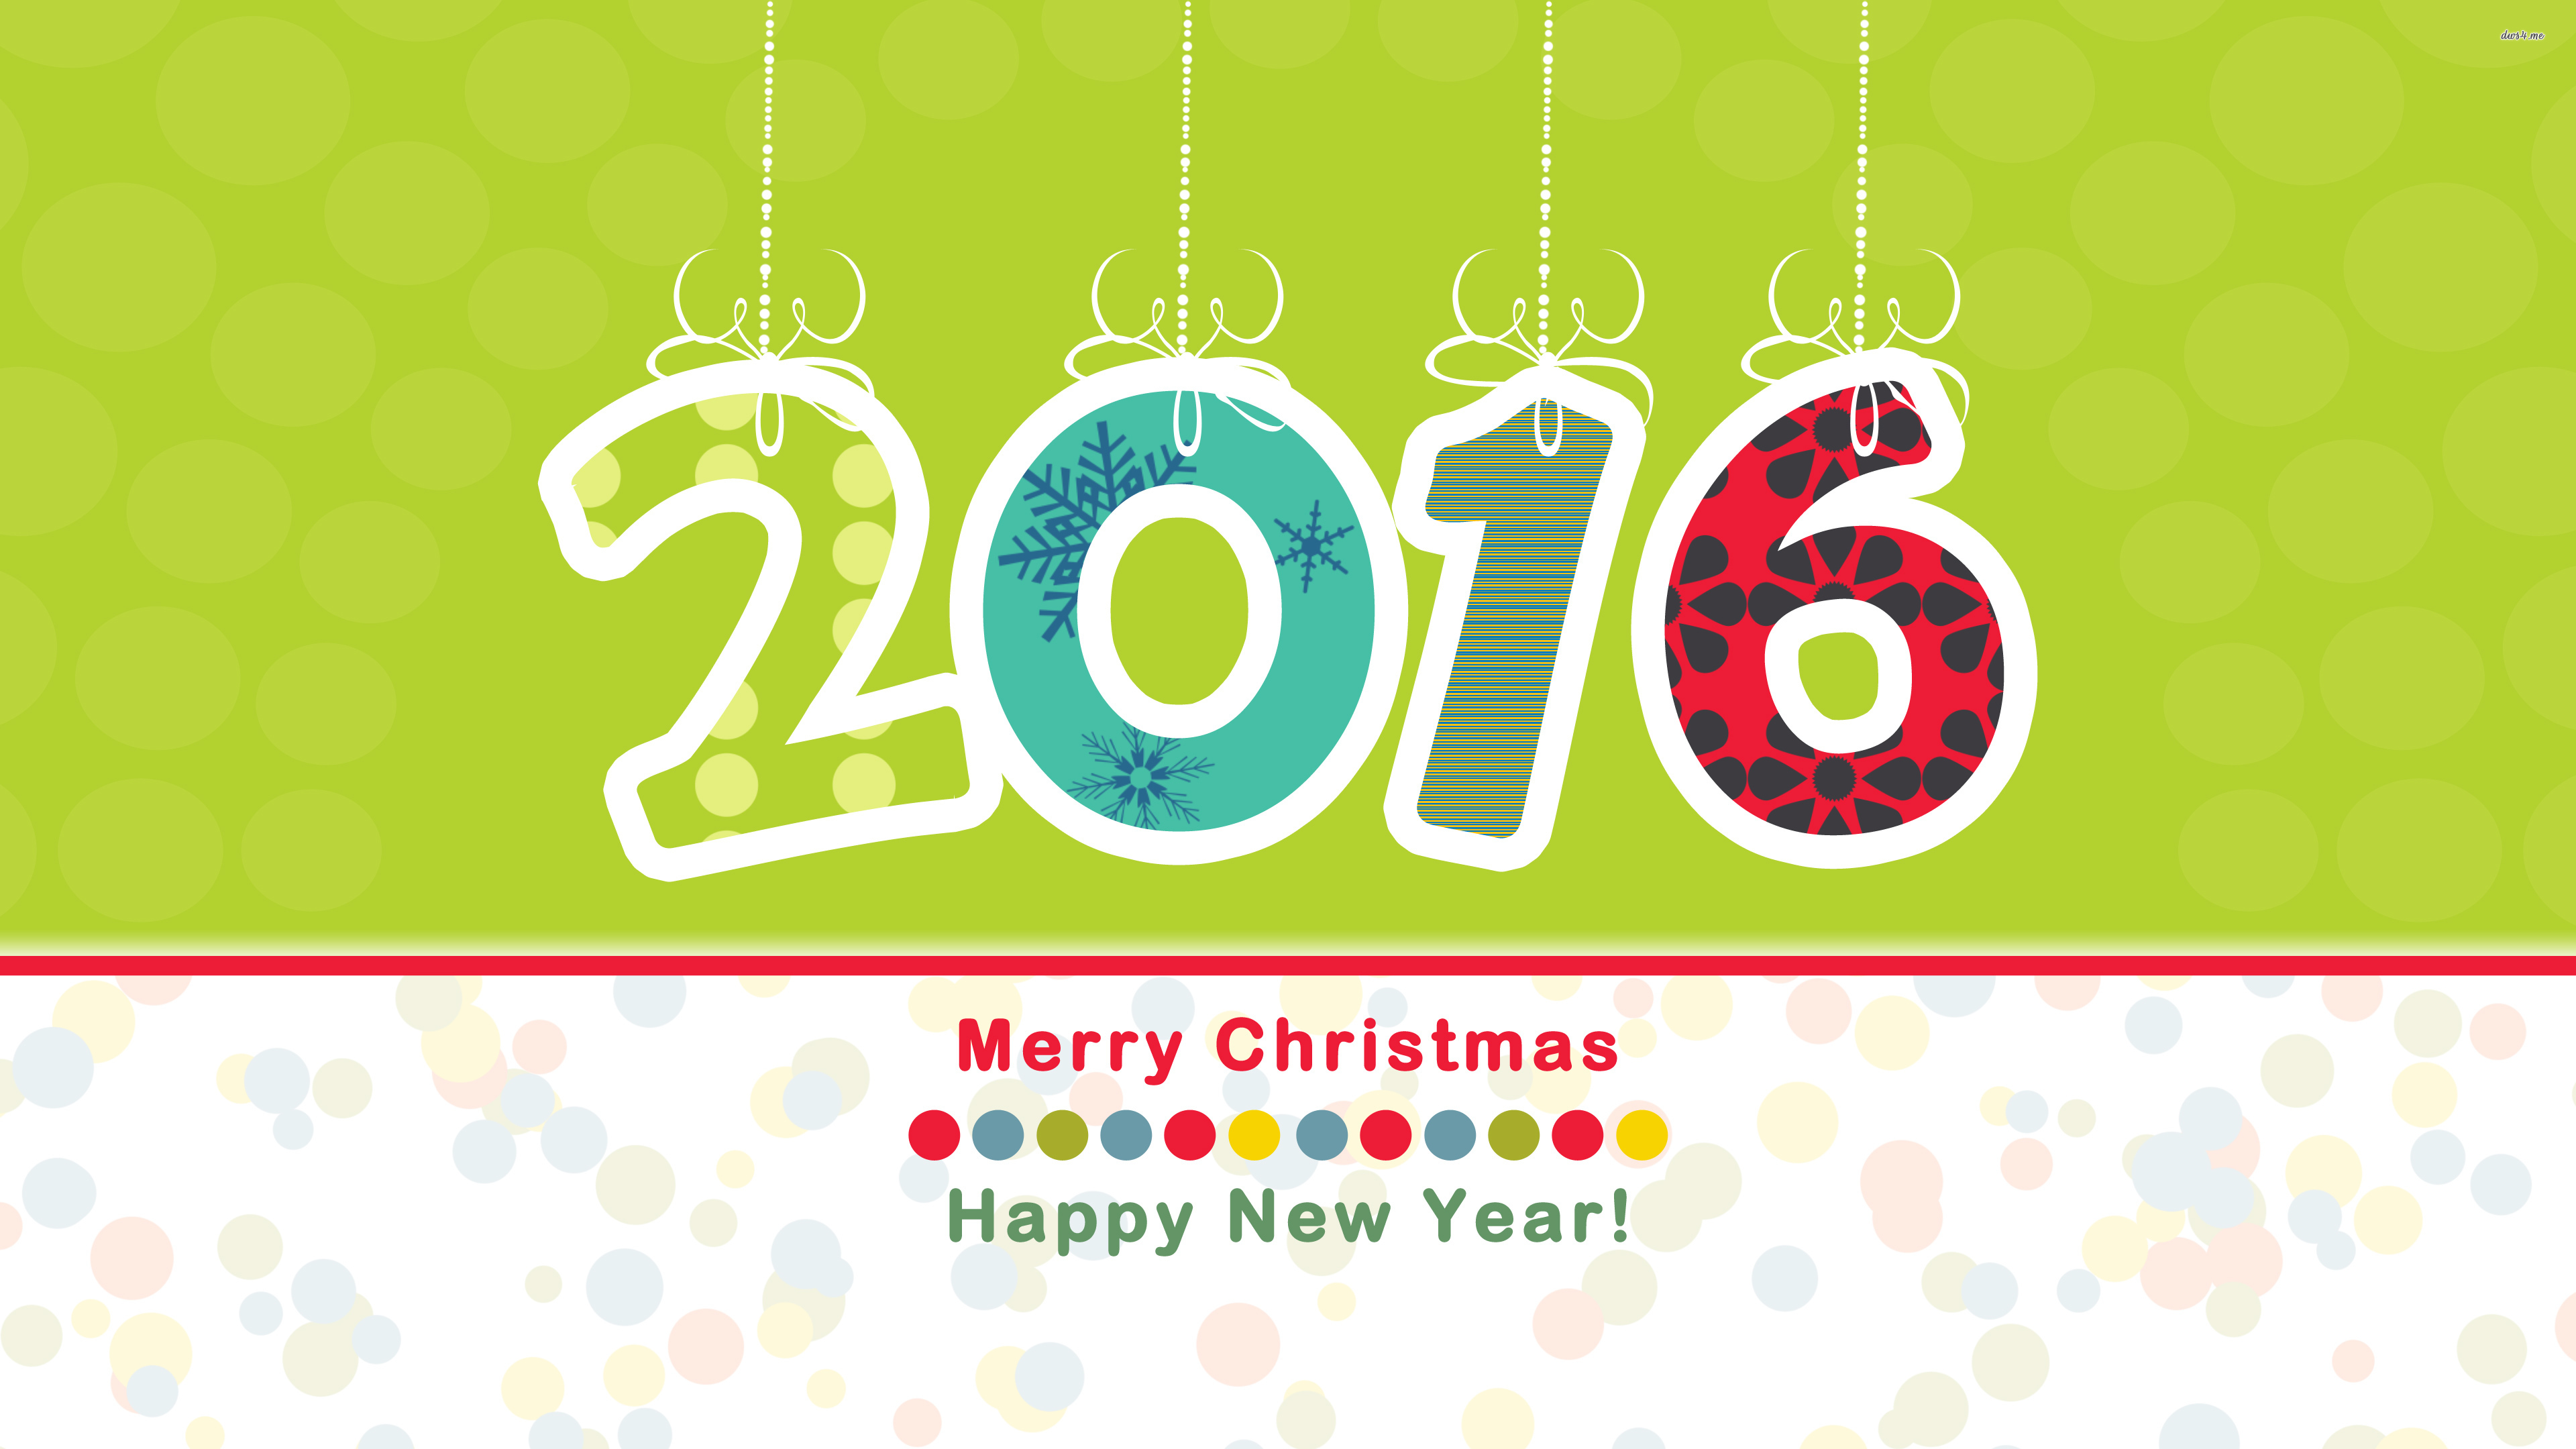 Top 10 4k hd happy new year 2016 wallpapers axeetech for New design wallpaper 2016